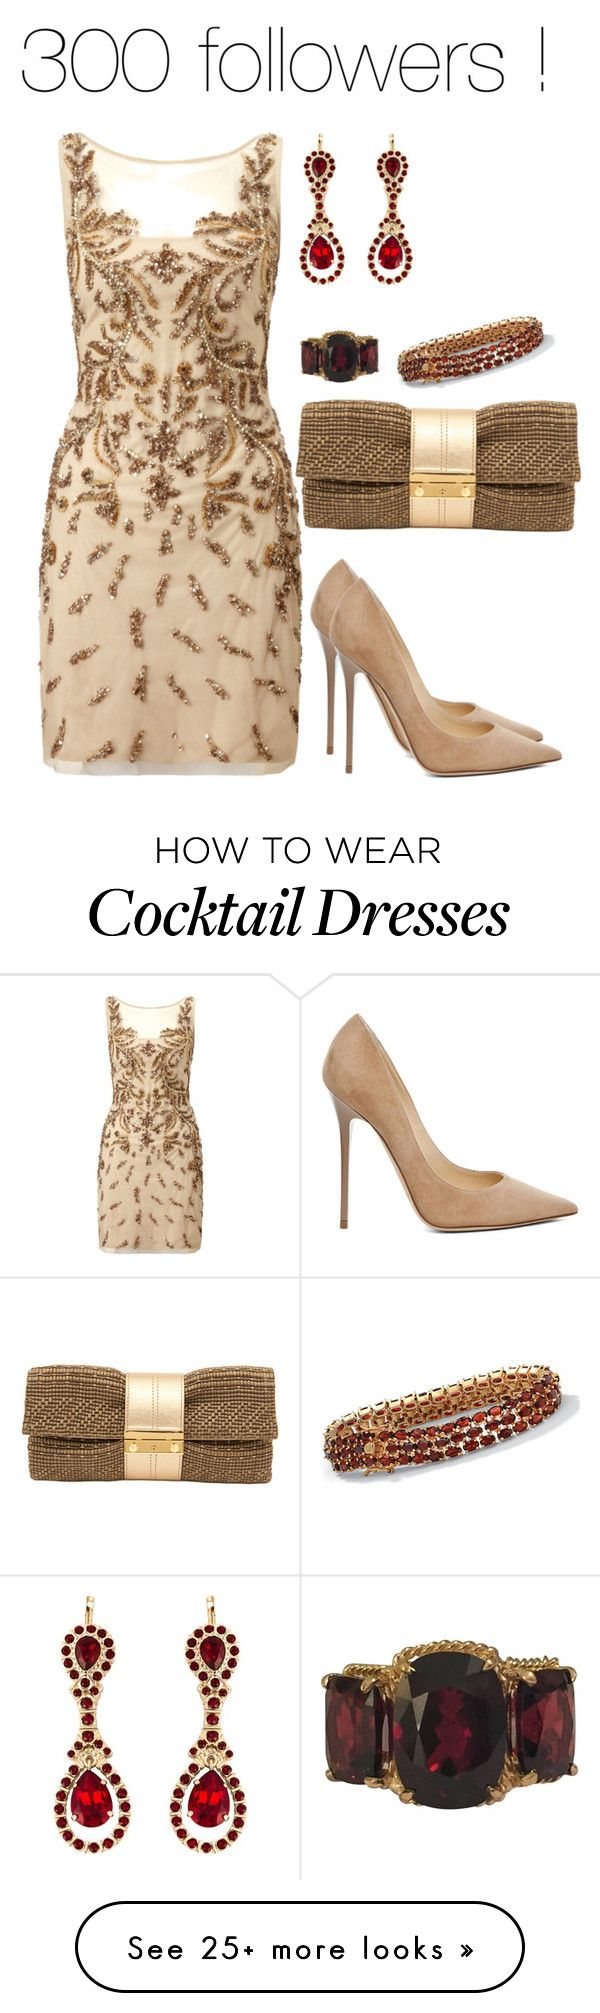 """Untitled #653"" by ice1801 on Polyvore featuring Aidan Mattox, Joanna Maxham, Jimmy Choo, Givenchy, Christina Addison and Palm Beach Jewelry"